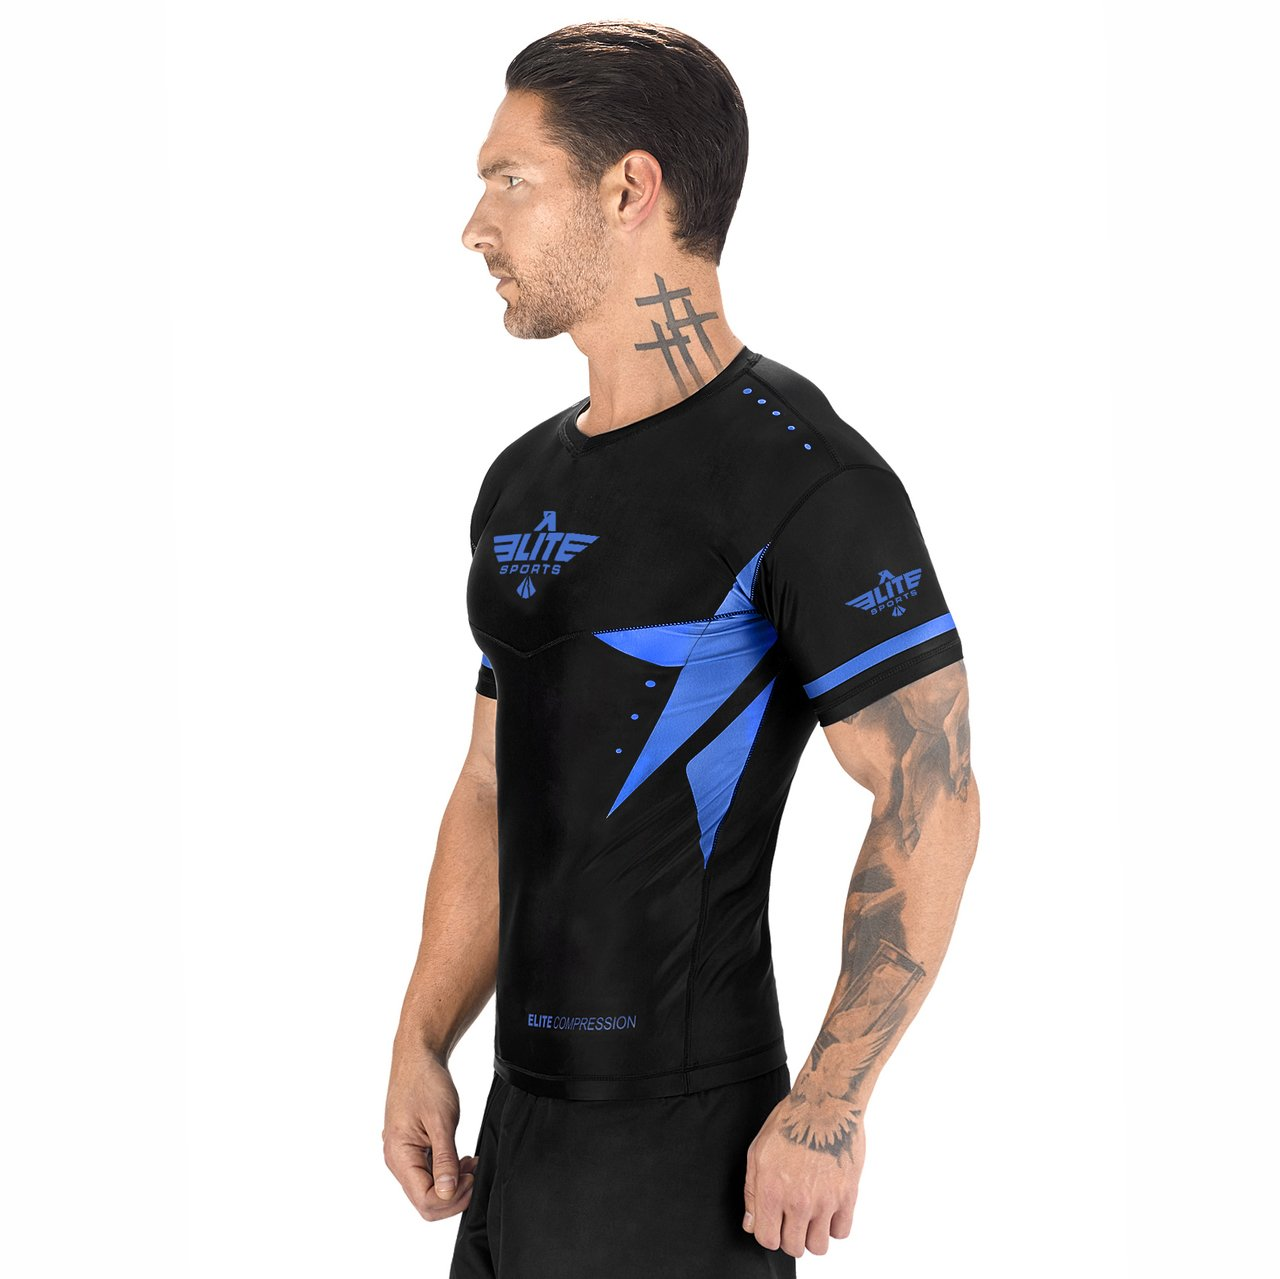 Load image into Gallery viewer, Elite Sports Star Series Sublimation Black/Blue Short Sleeve Judo Rash Guard